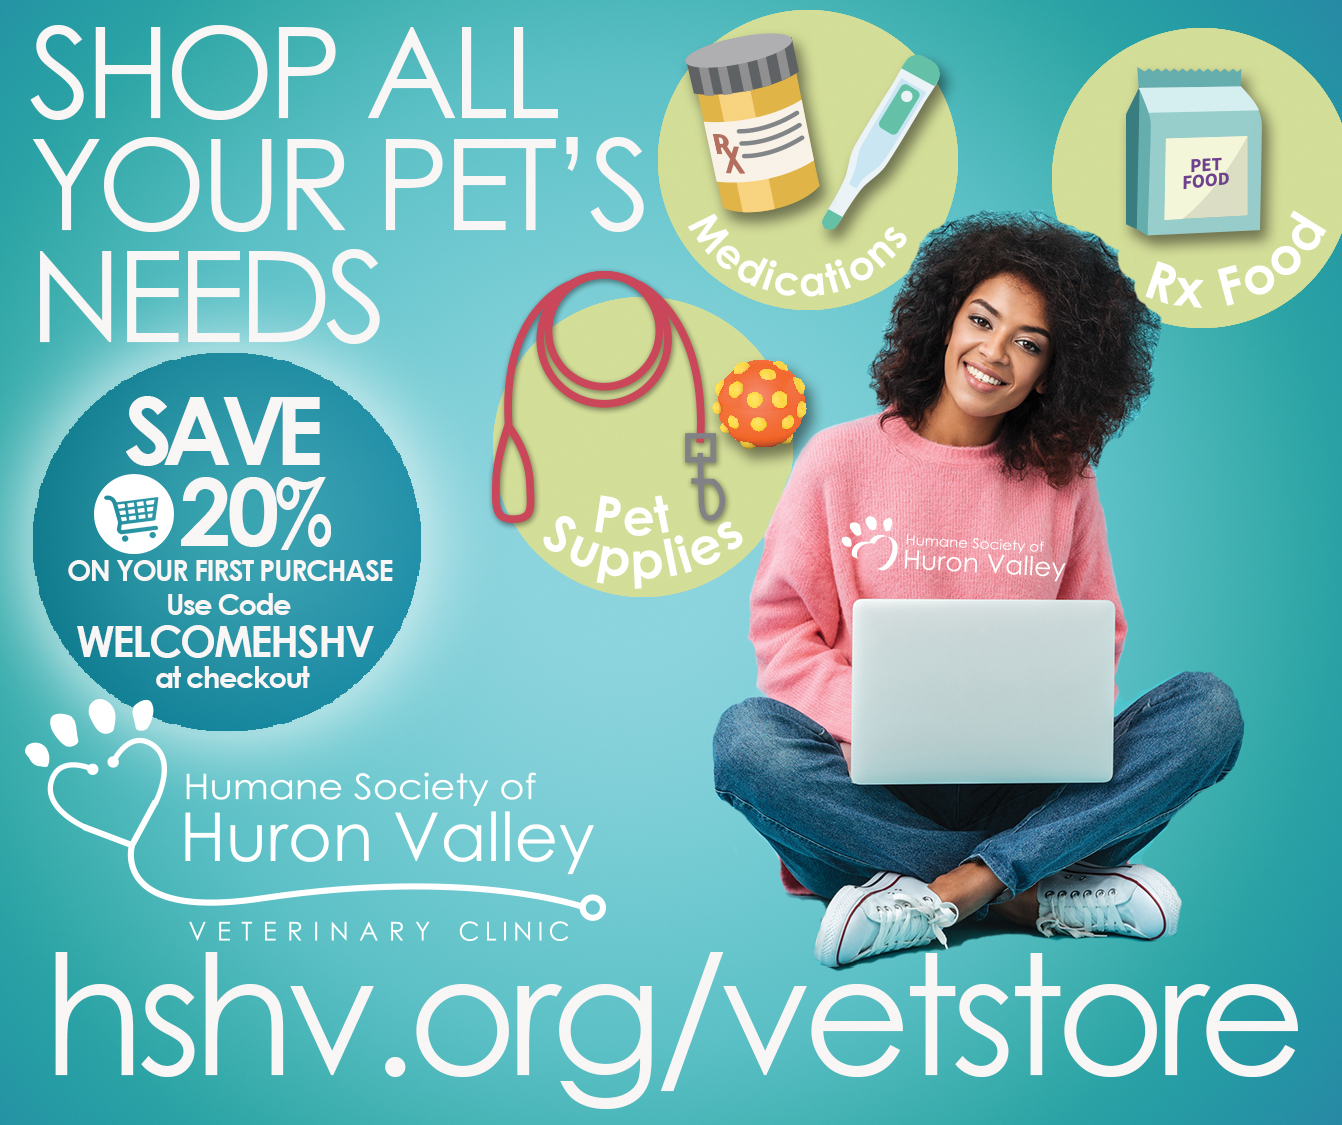 Get all your pets needs at our vet store